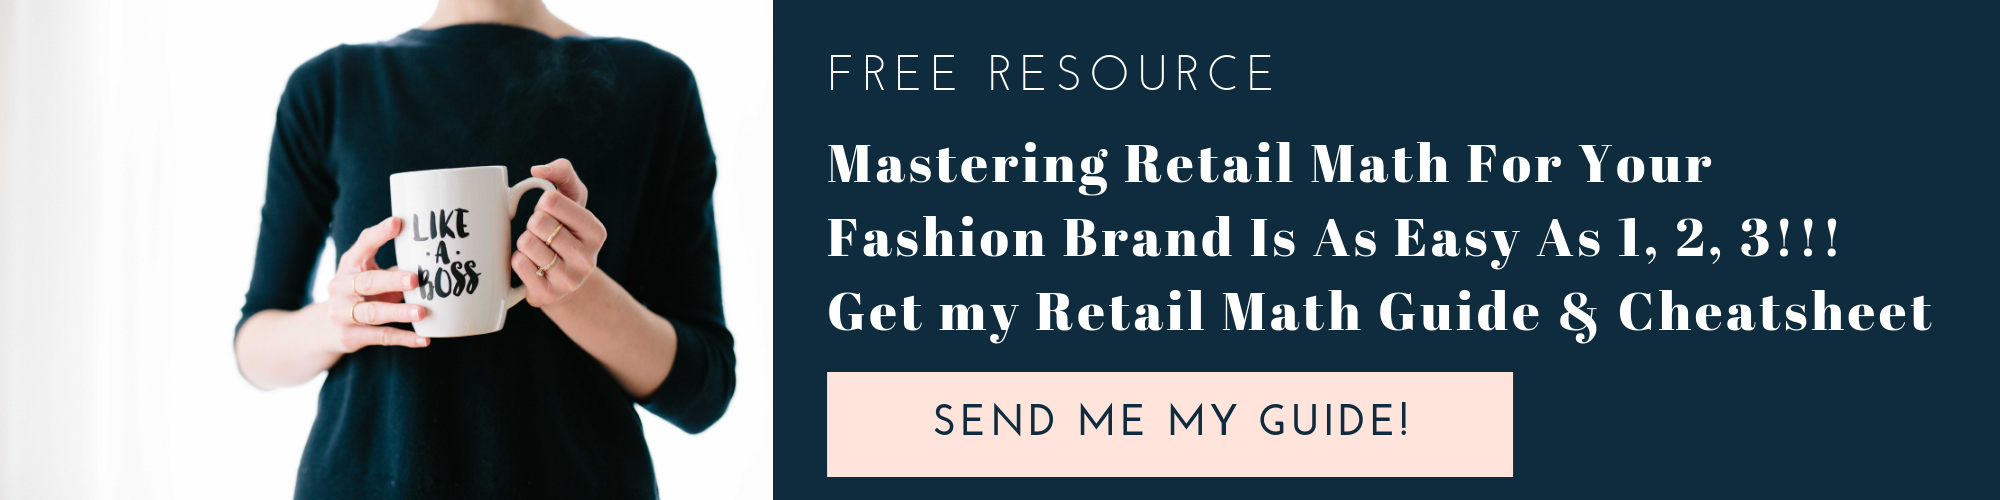 Mastering Retail Math for your fashion brand is easy. Get my Retail Math Guide and Cheatsheet